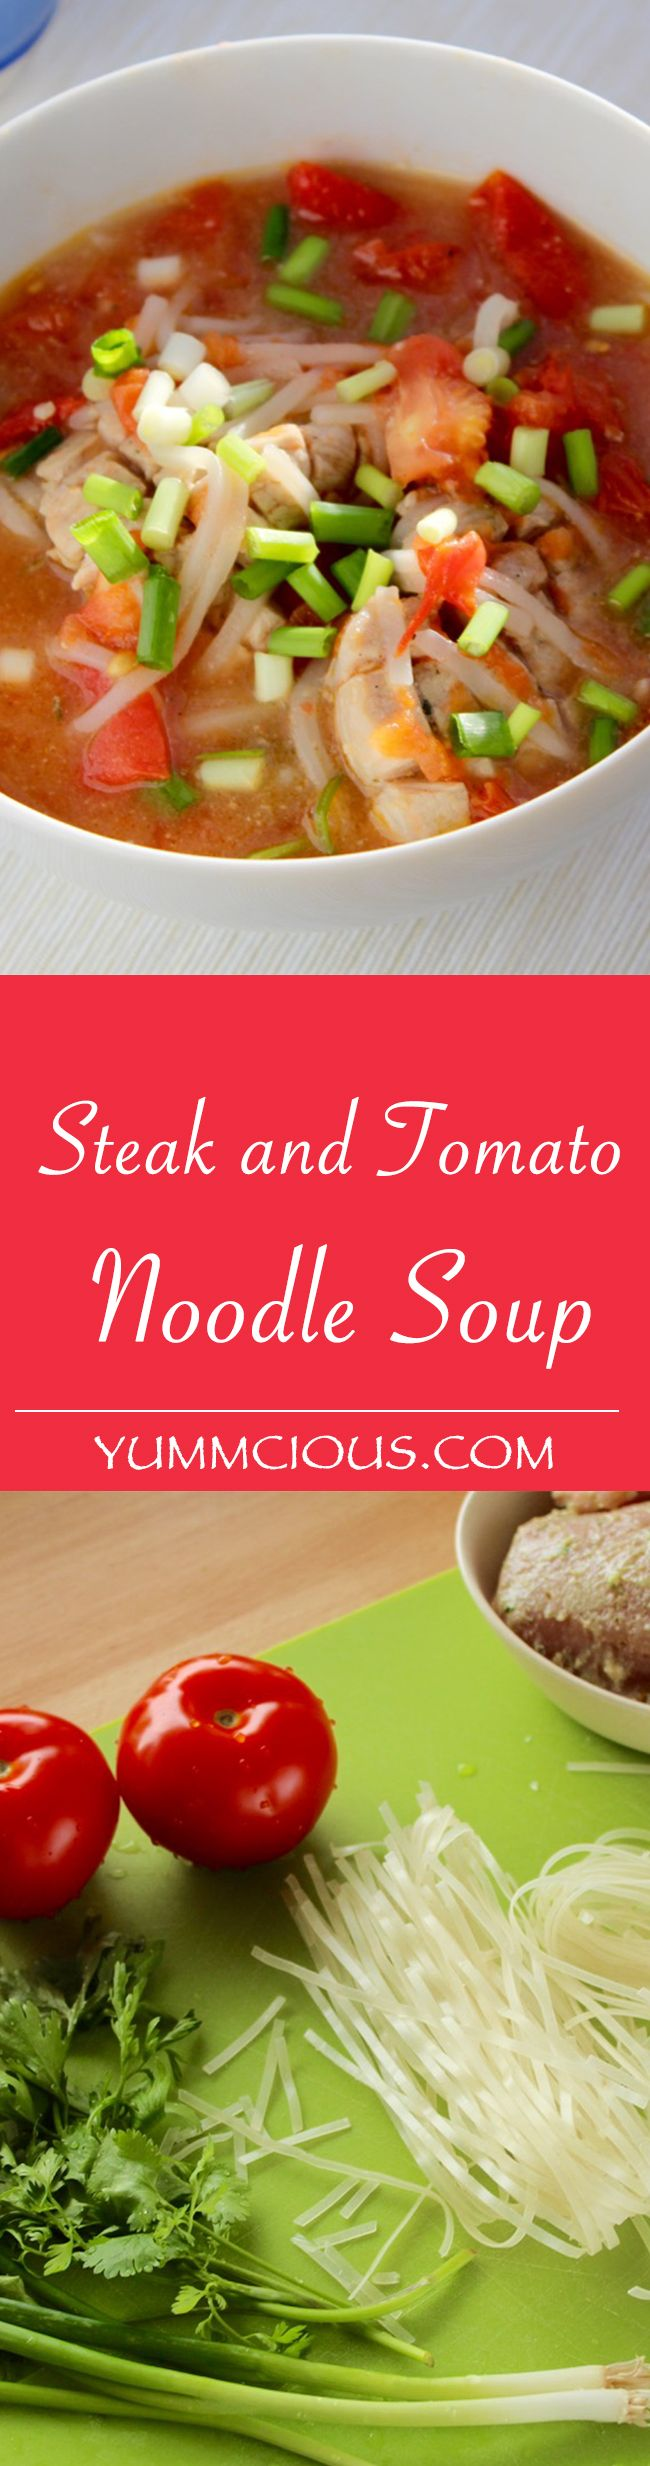 Steak and Tomato Noodle Soup - http://yummcious.com/steak-and-tomatoes-noodle-soup-recipe/